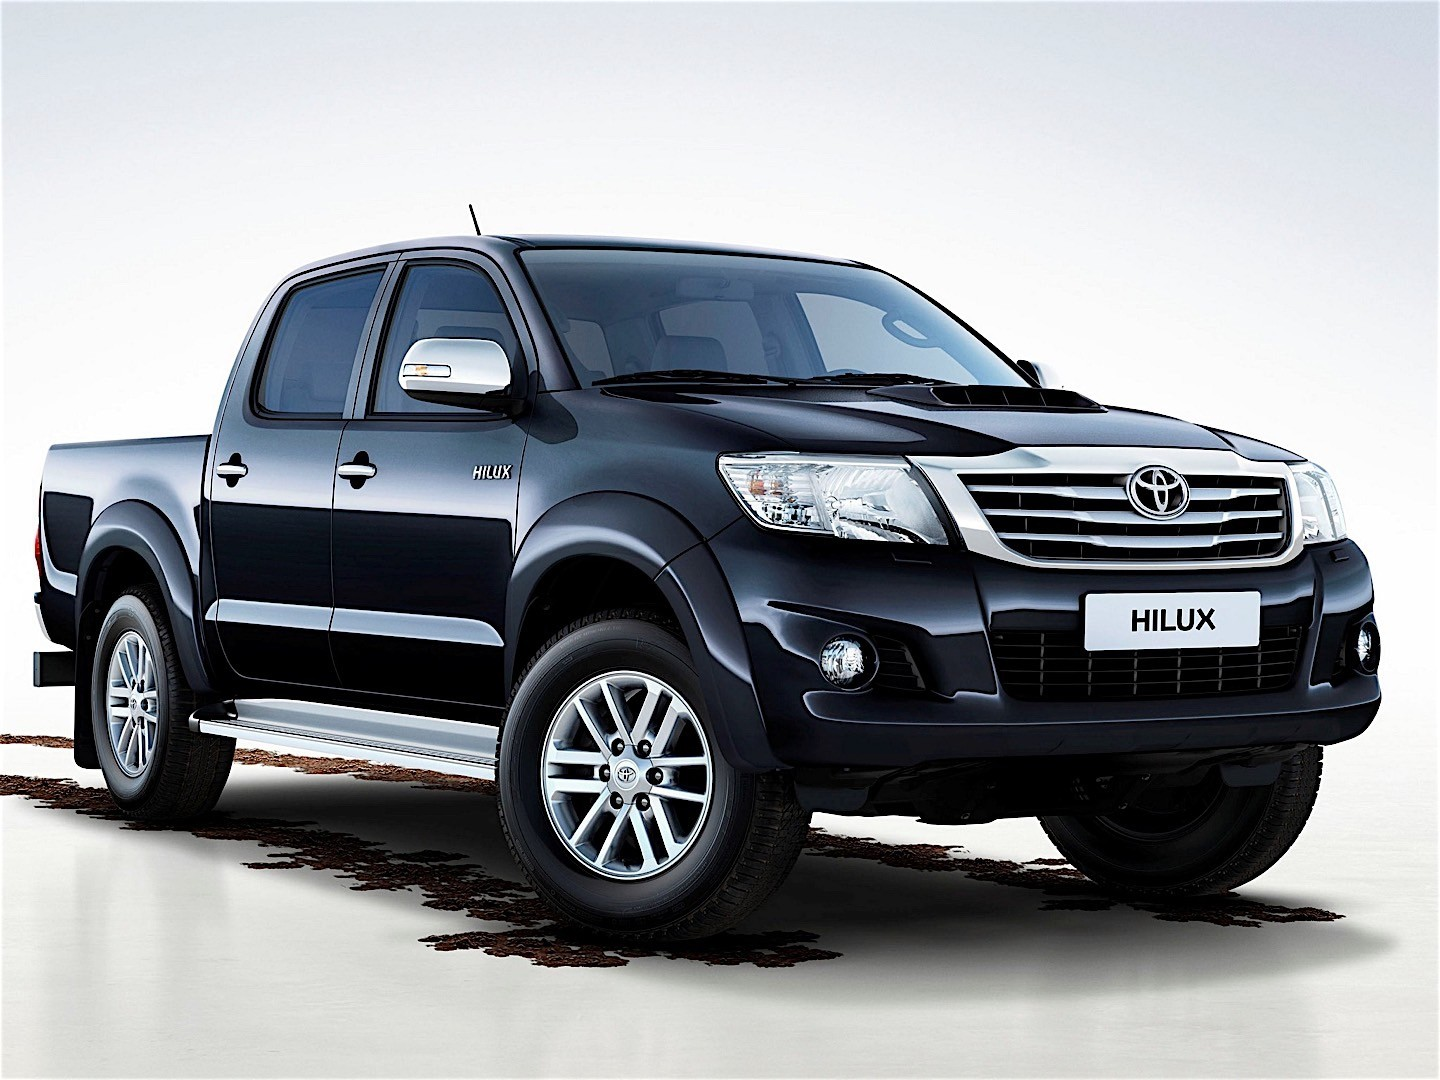 toyota hilux double cab specs 2011 2012 2013 2014 2015 autoevolution. Black Bedroom Furniture Sets. Home Design Ideas